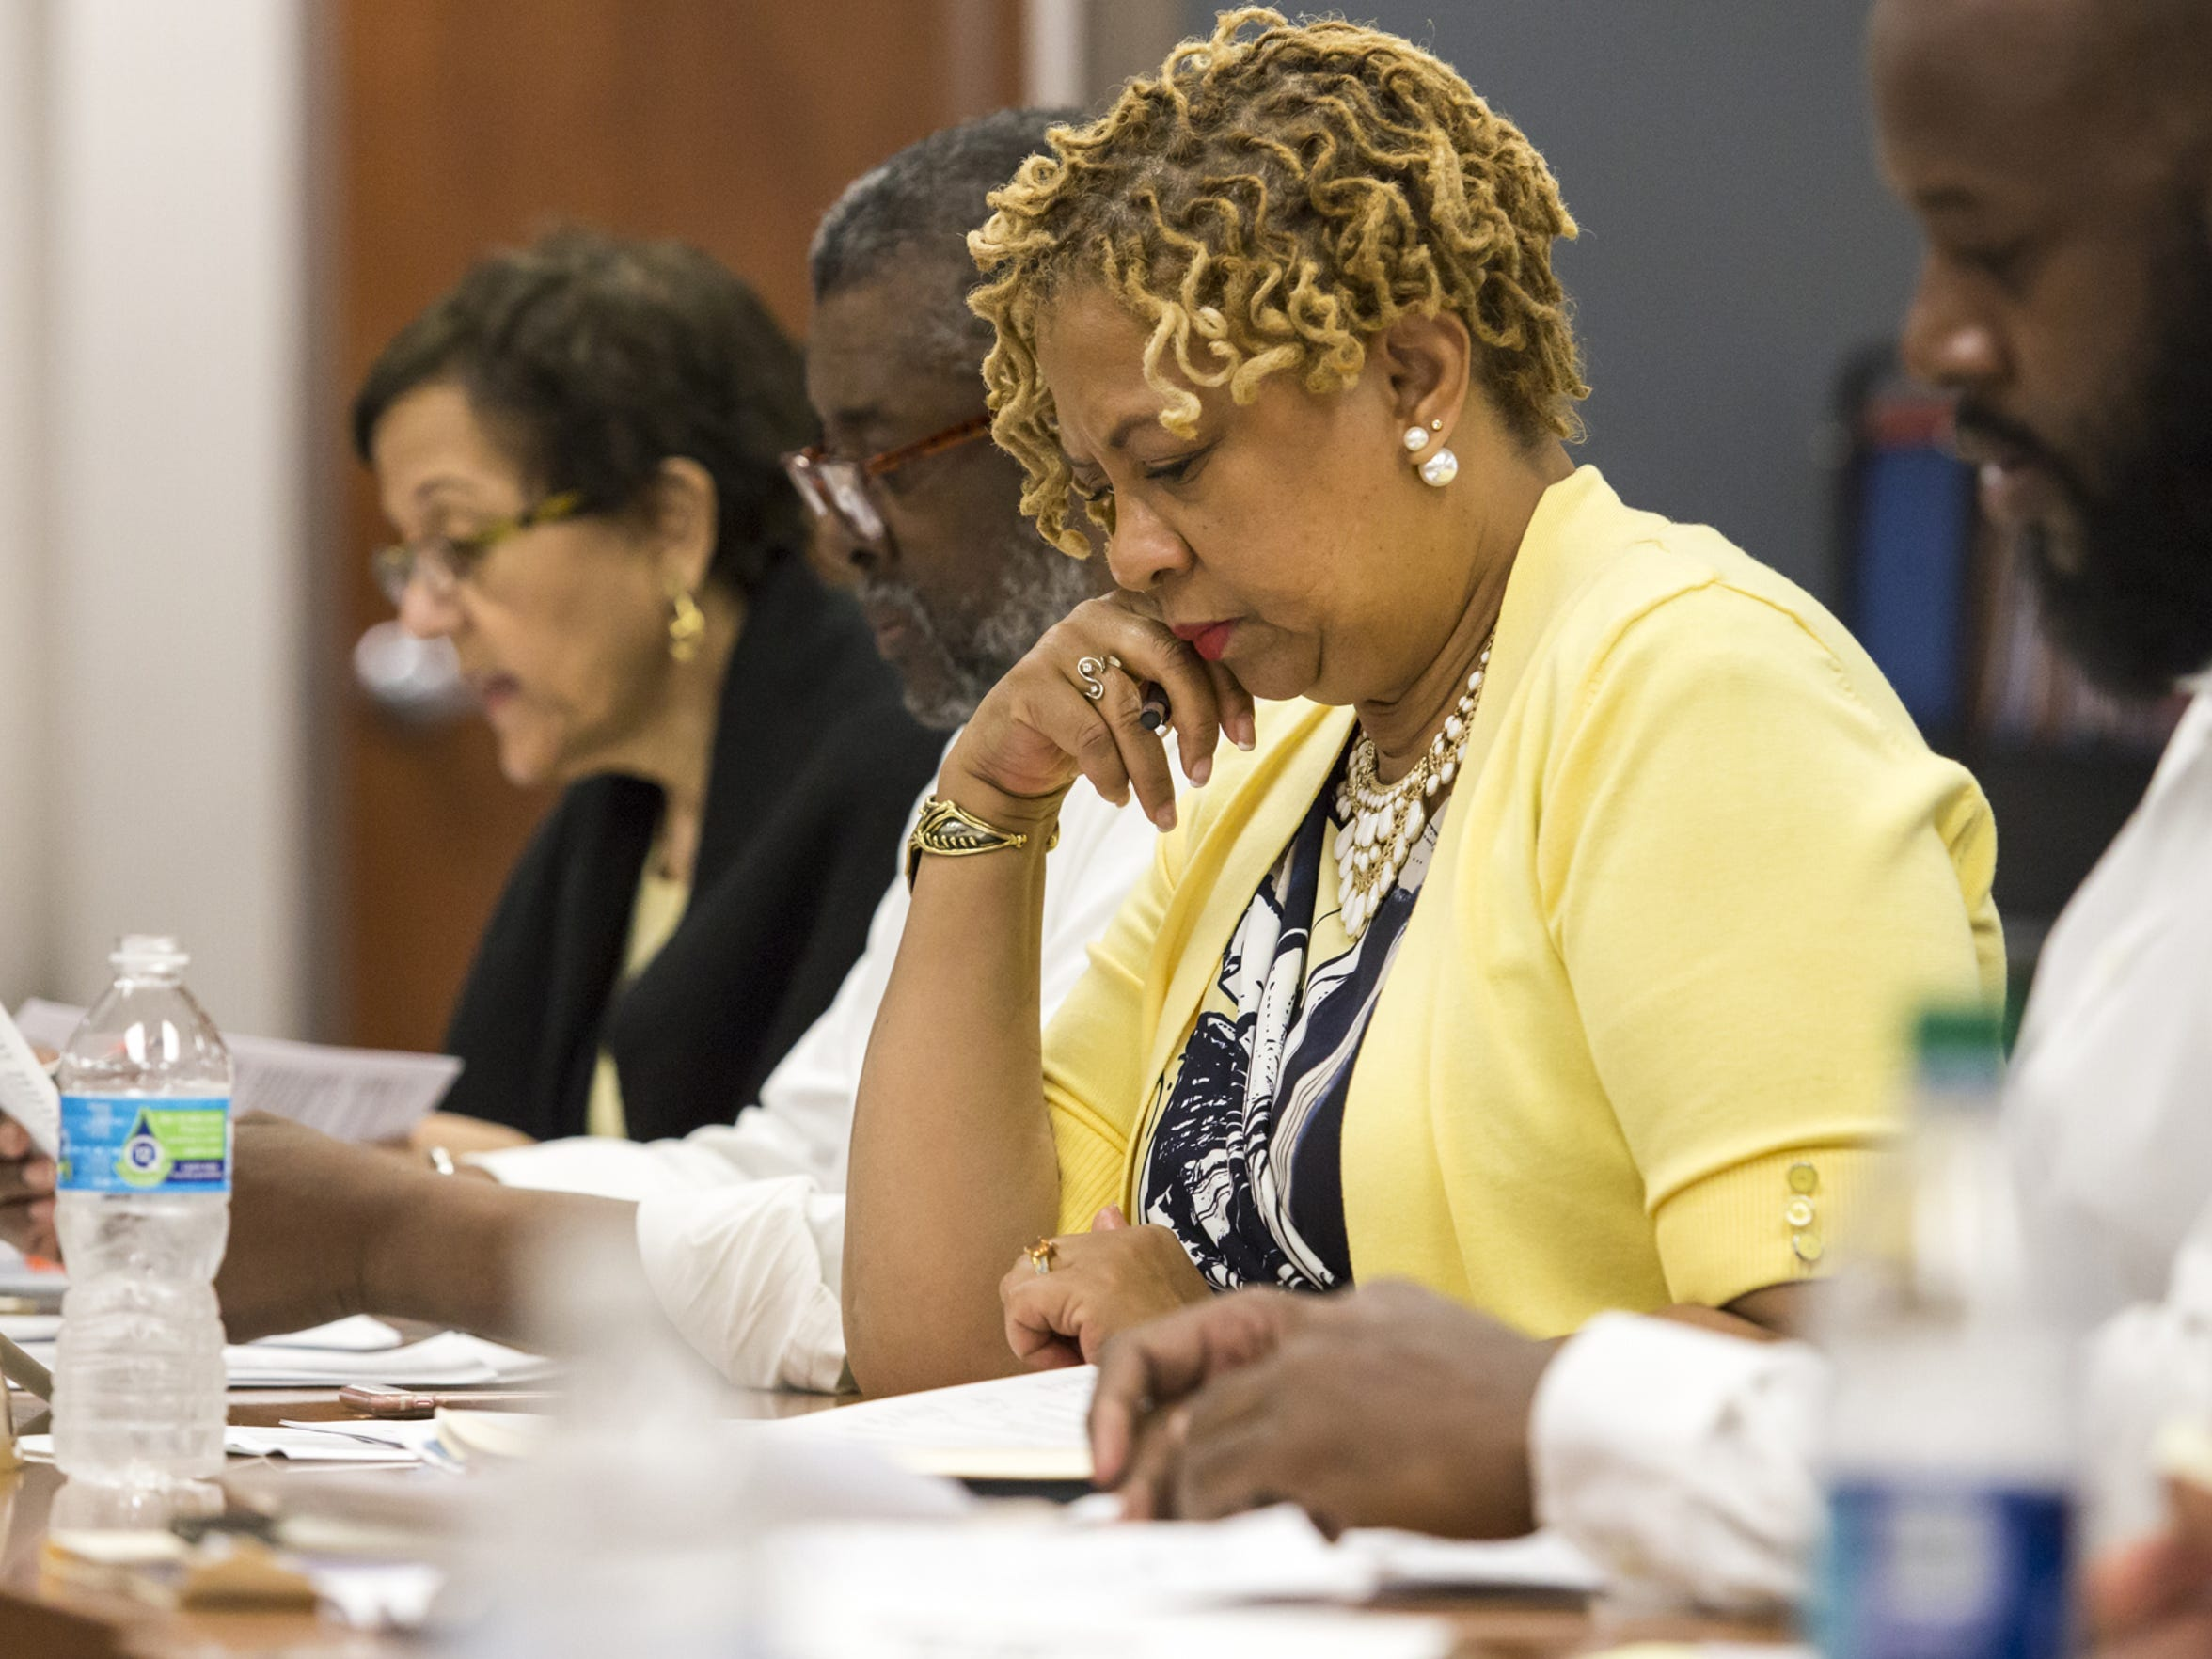 Wilmington City Council President Hanifa Shabazz looks over a report during a meeting with city officials and community leaders on recommendations from a Centers for Disease Control and Prevention report on violence in the city at the Achievement Center in Wilmington earlier in 2016.